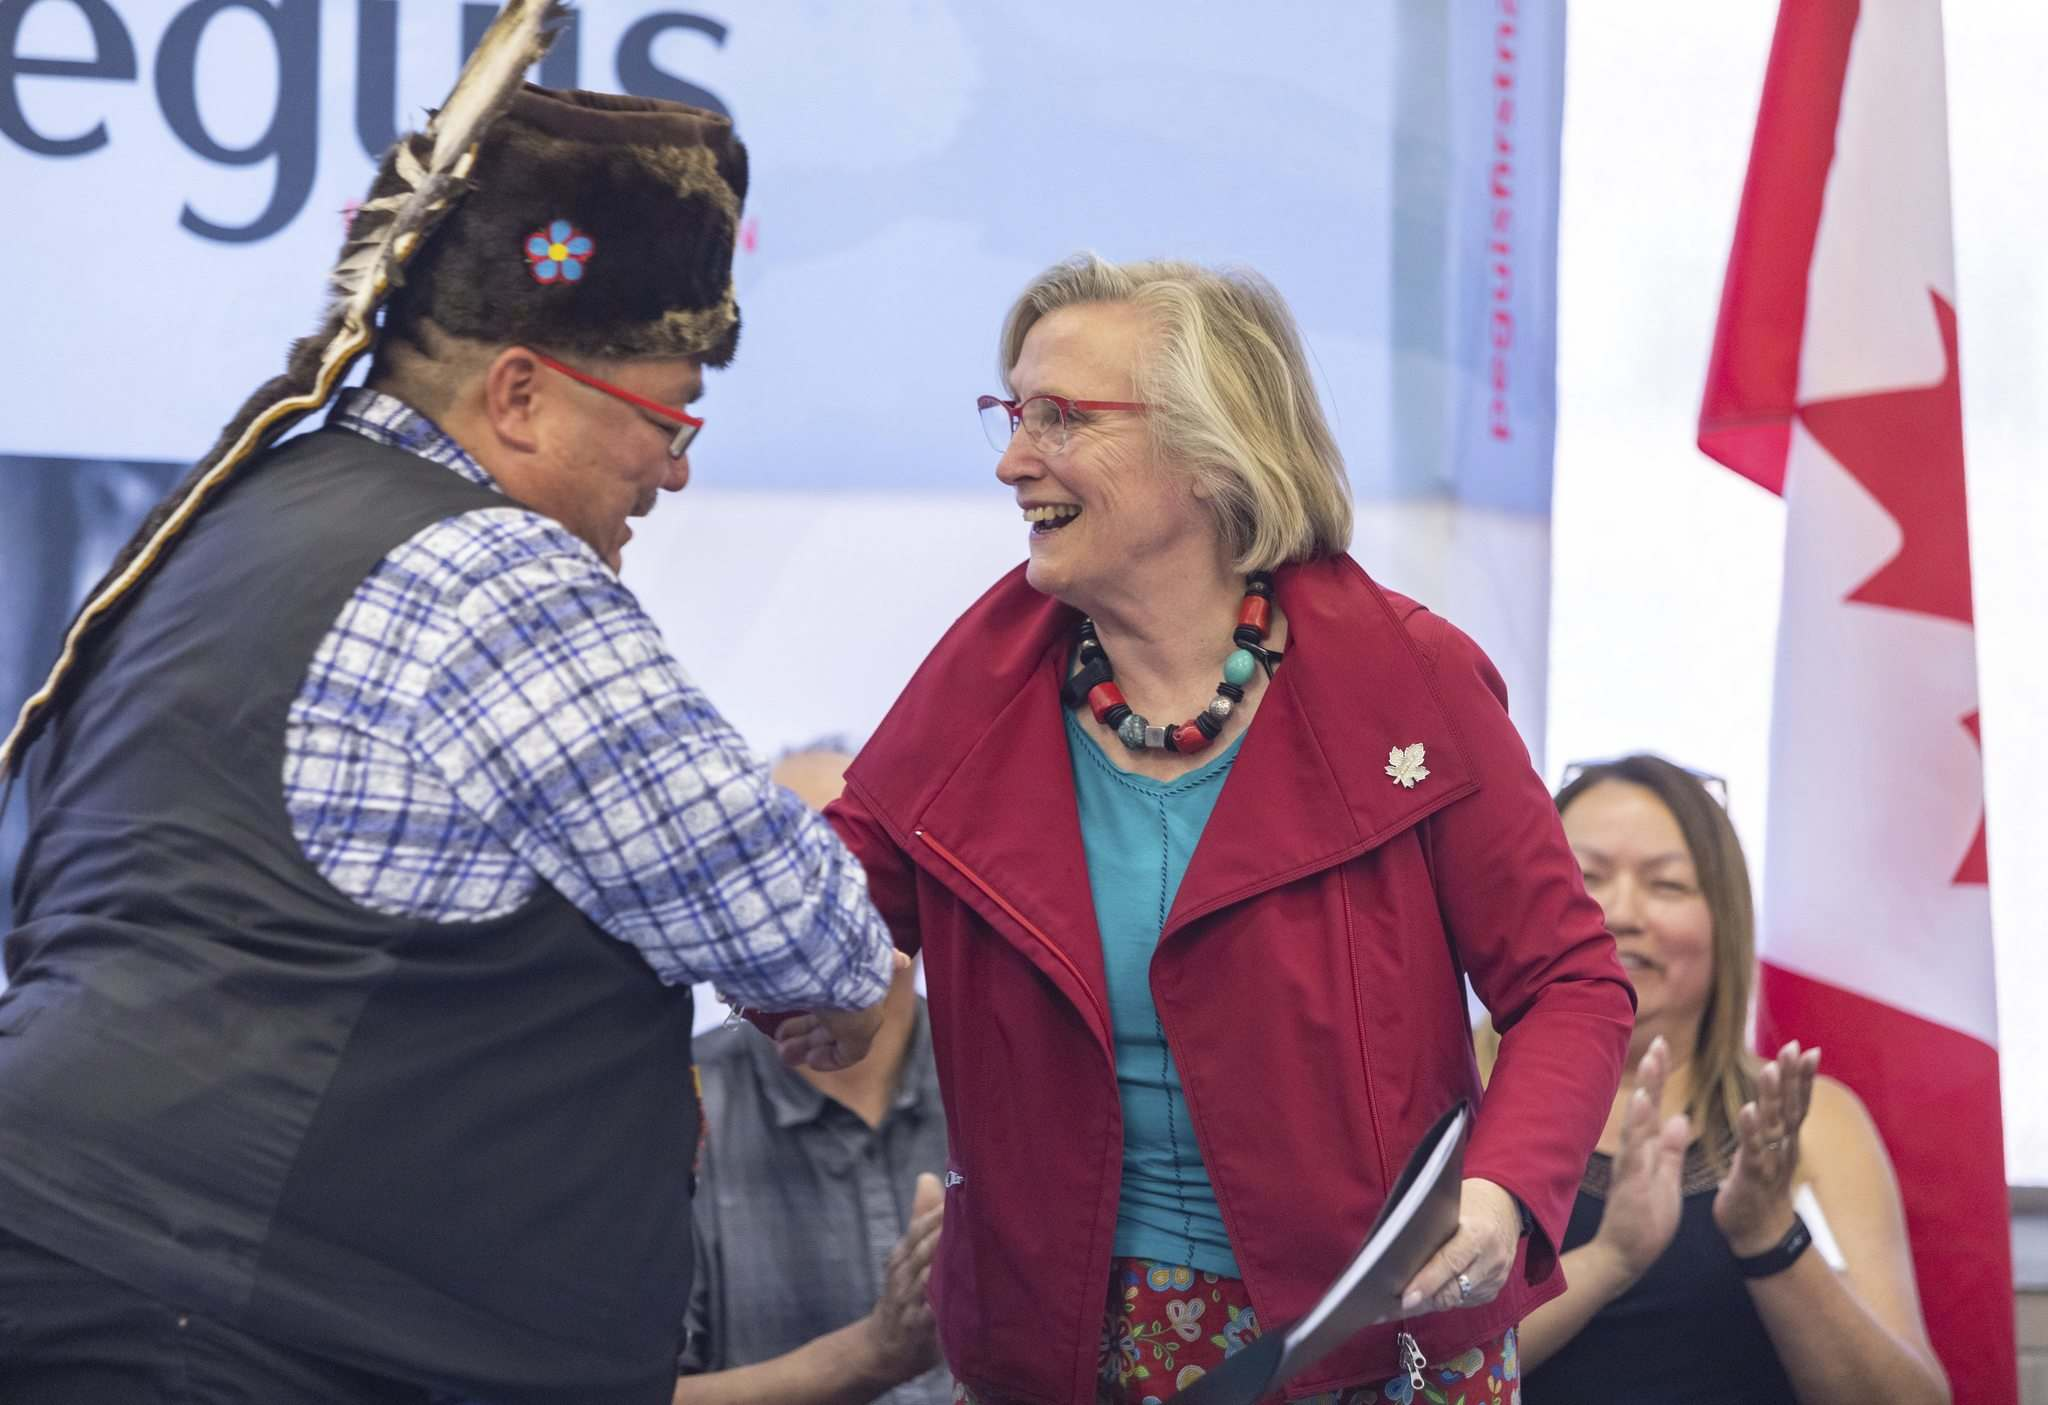 SASHA SEFTER / WINNIPEG FREE PRESS</p><p>Chief Glenn Hudson of Peguis First Nation shakes hands with Carolyn Bennett, federal minister of Crown-Indigenous relations, at an event held at the urban reserve at 1075 Portage Ave. to mark the property officially becoming treaty land on Wednesday.</p>